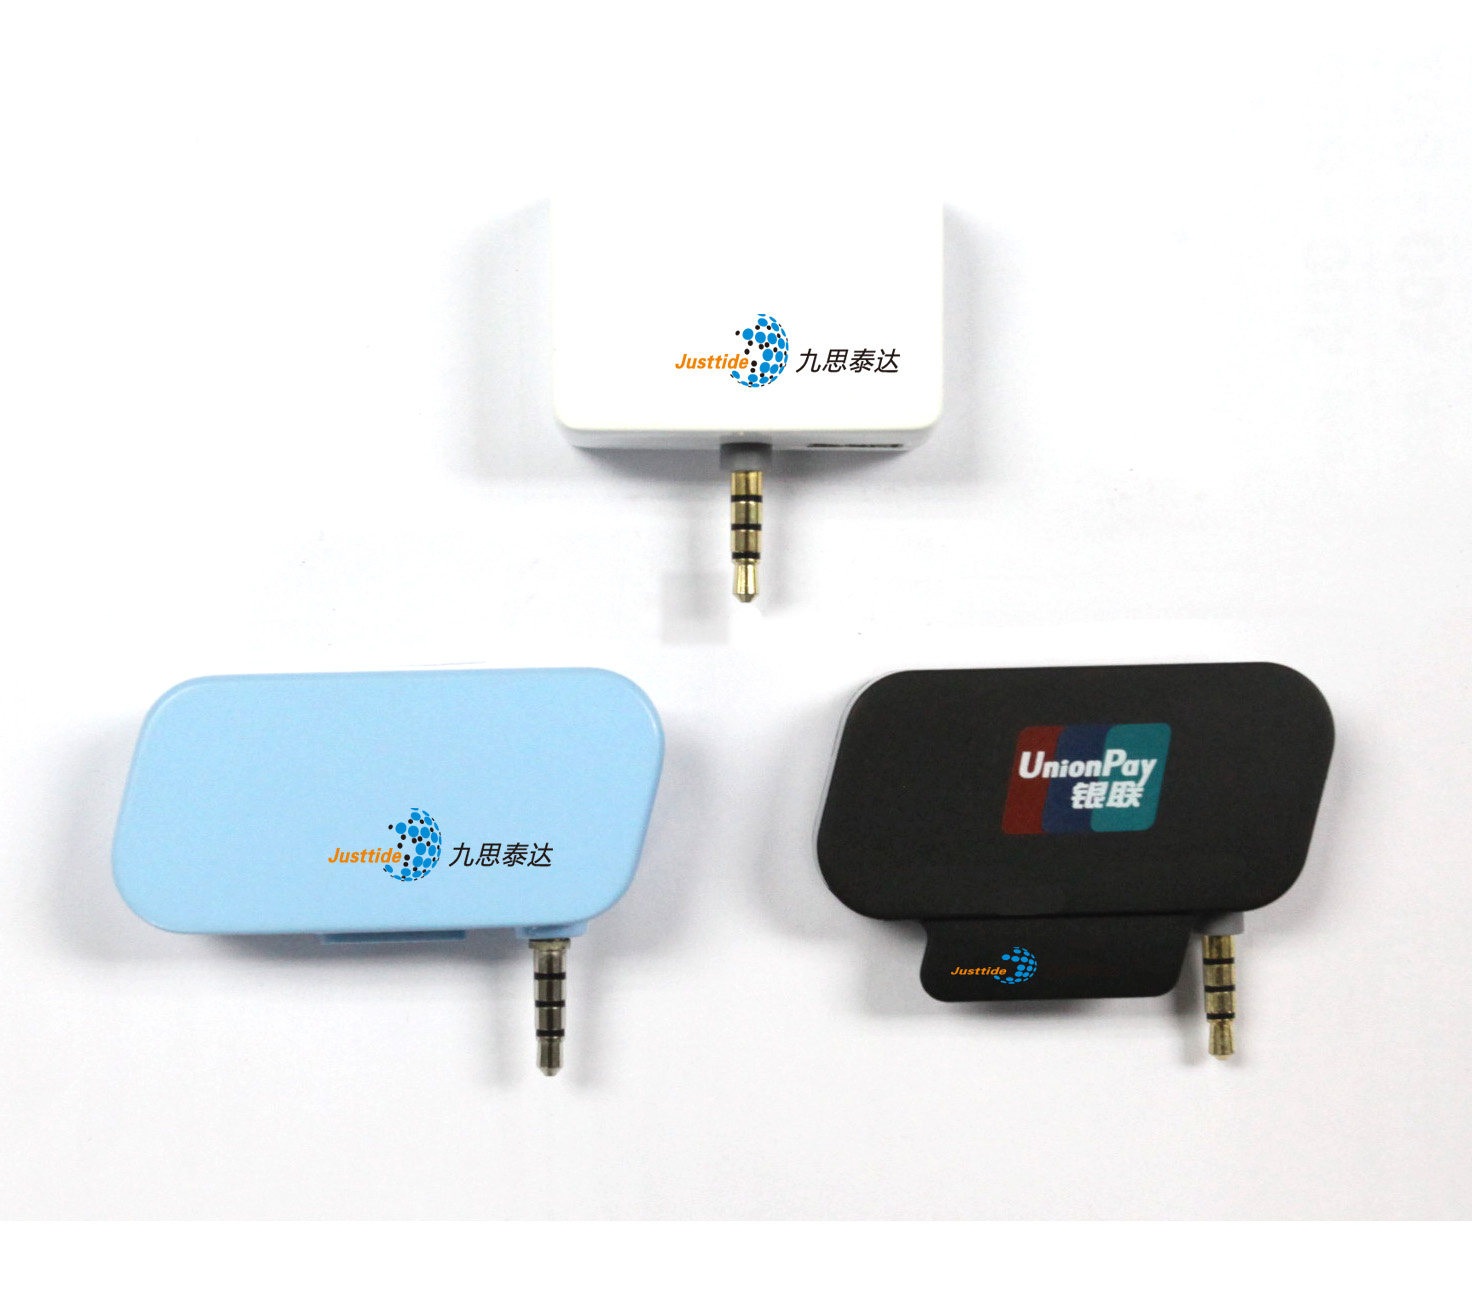 RD500 Mobile Phone Card Reader